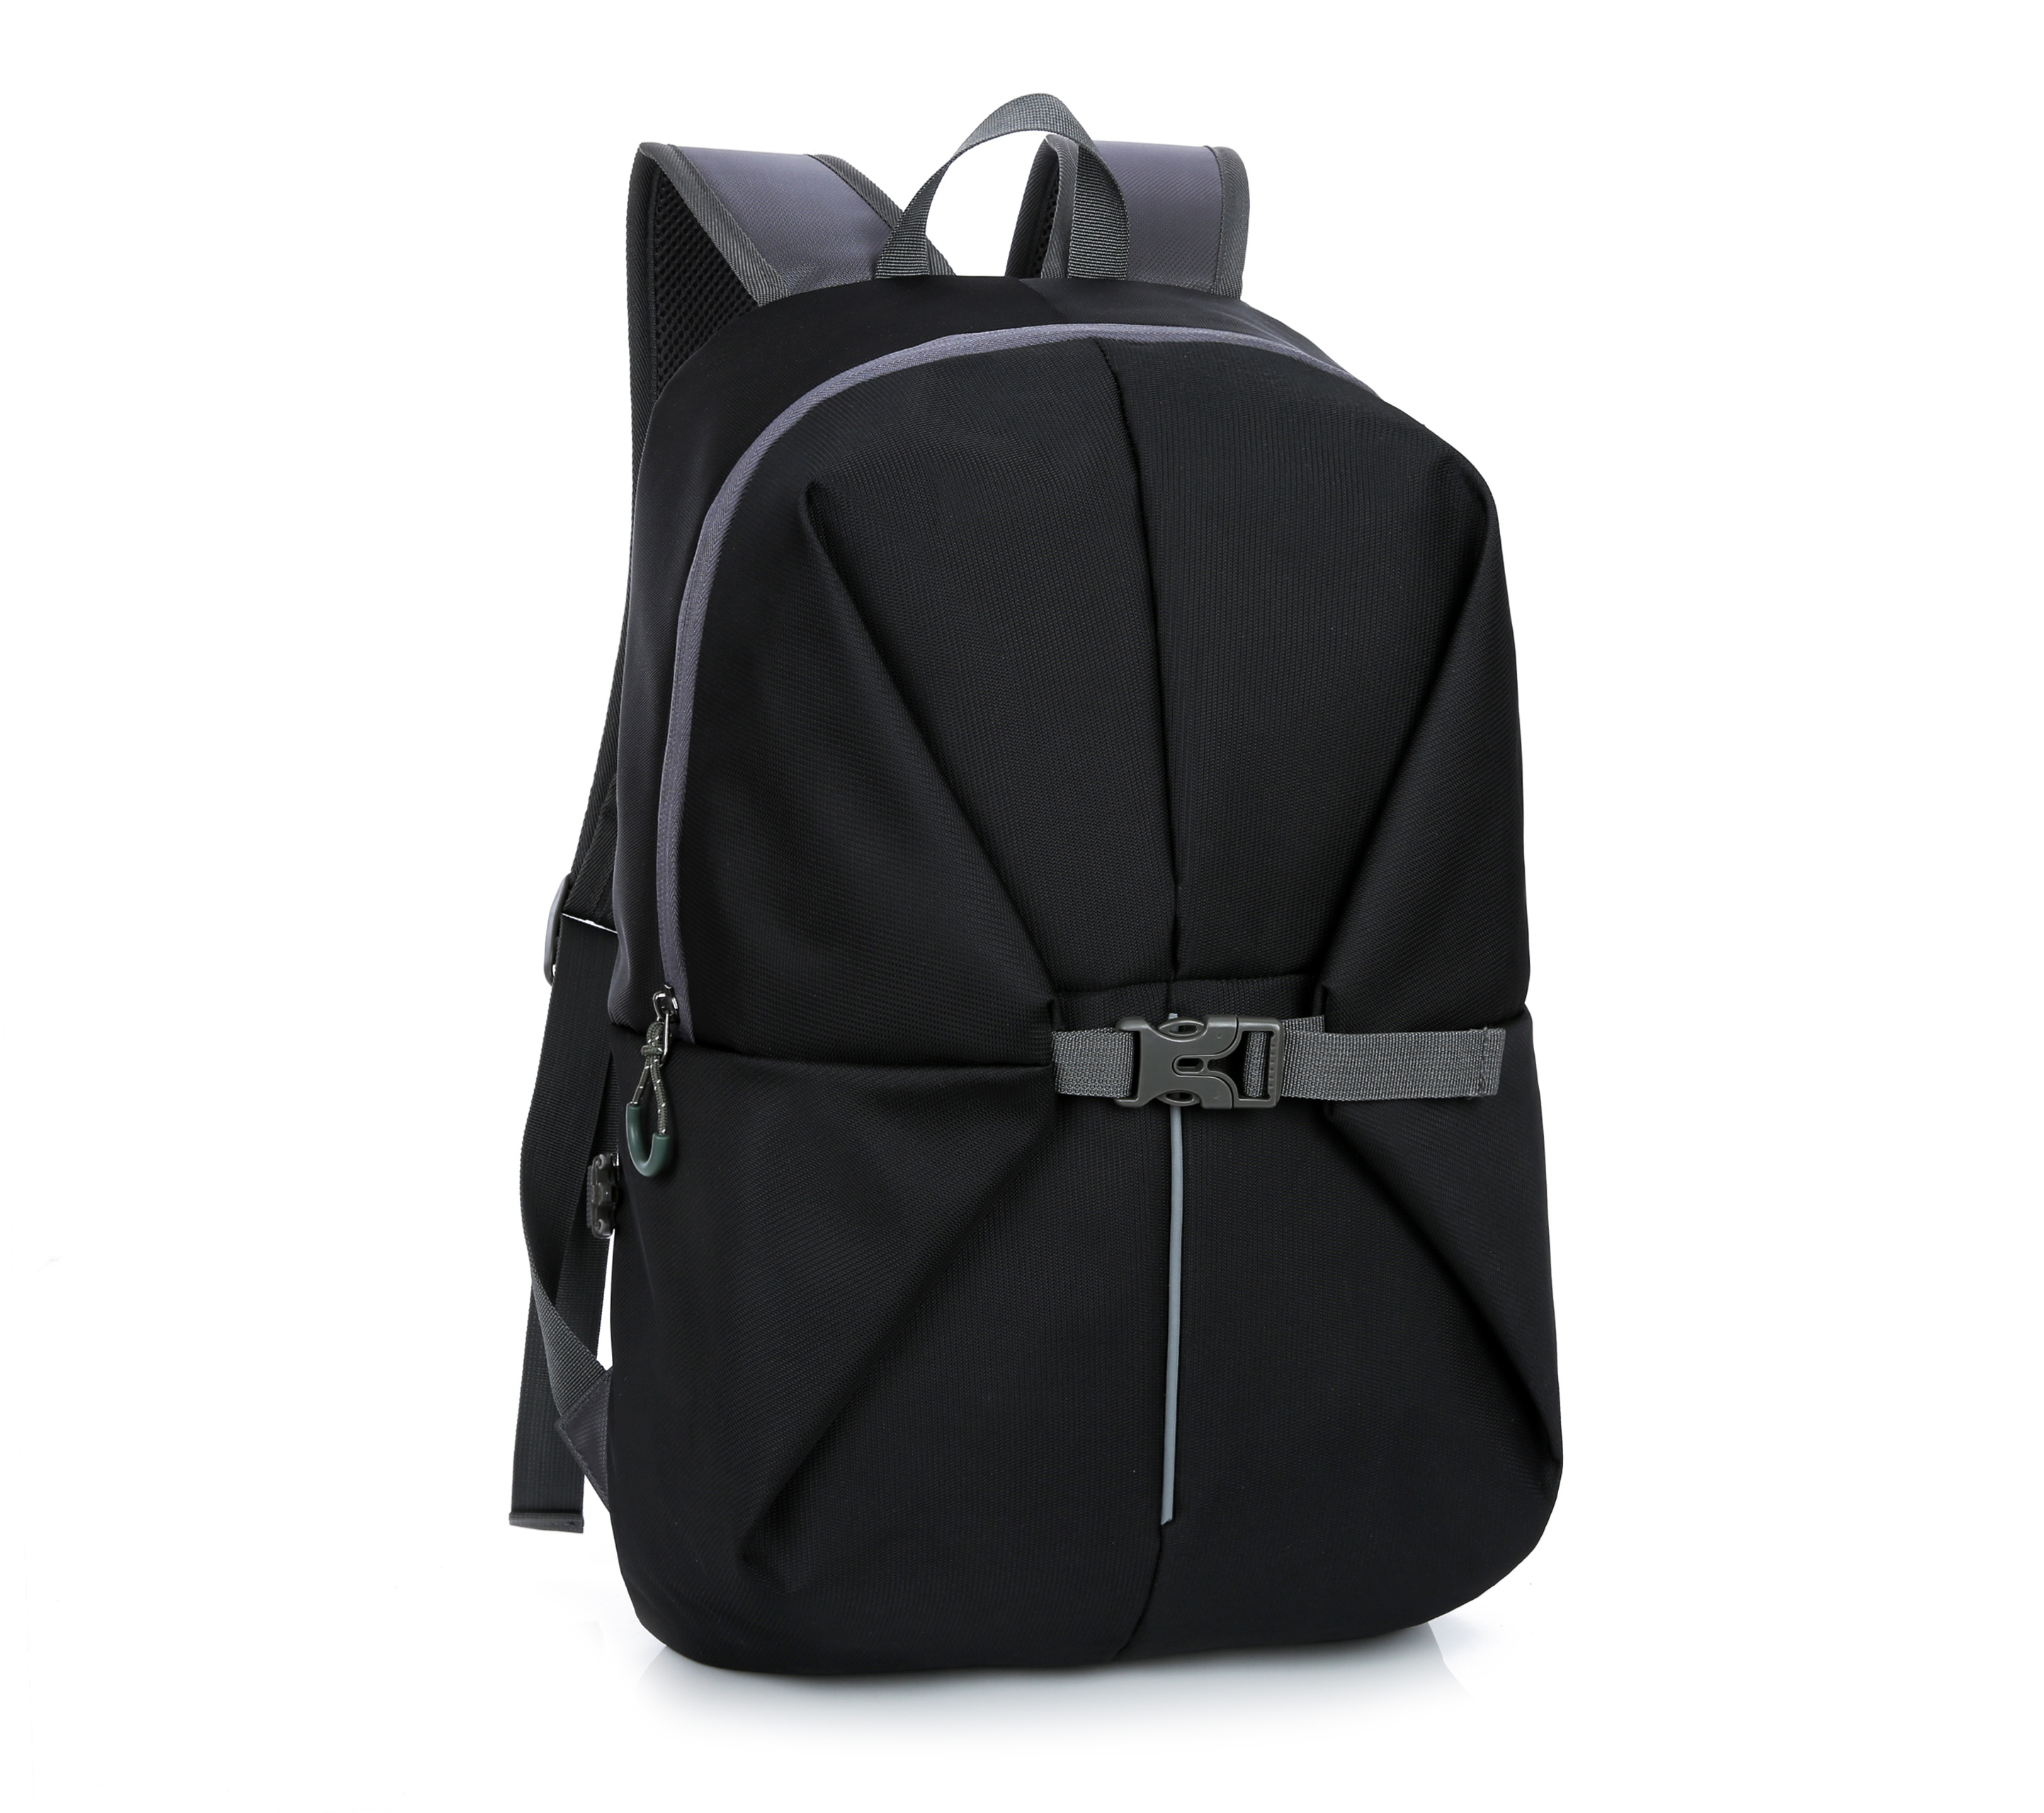 Hiking Sports Daypack Backpack